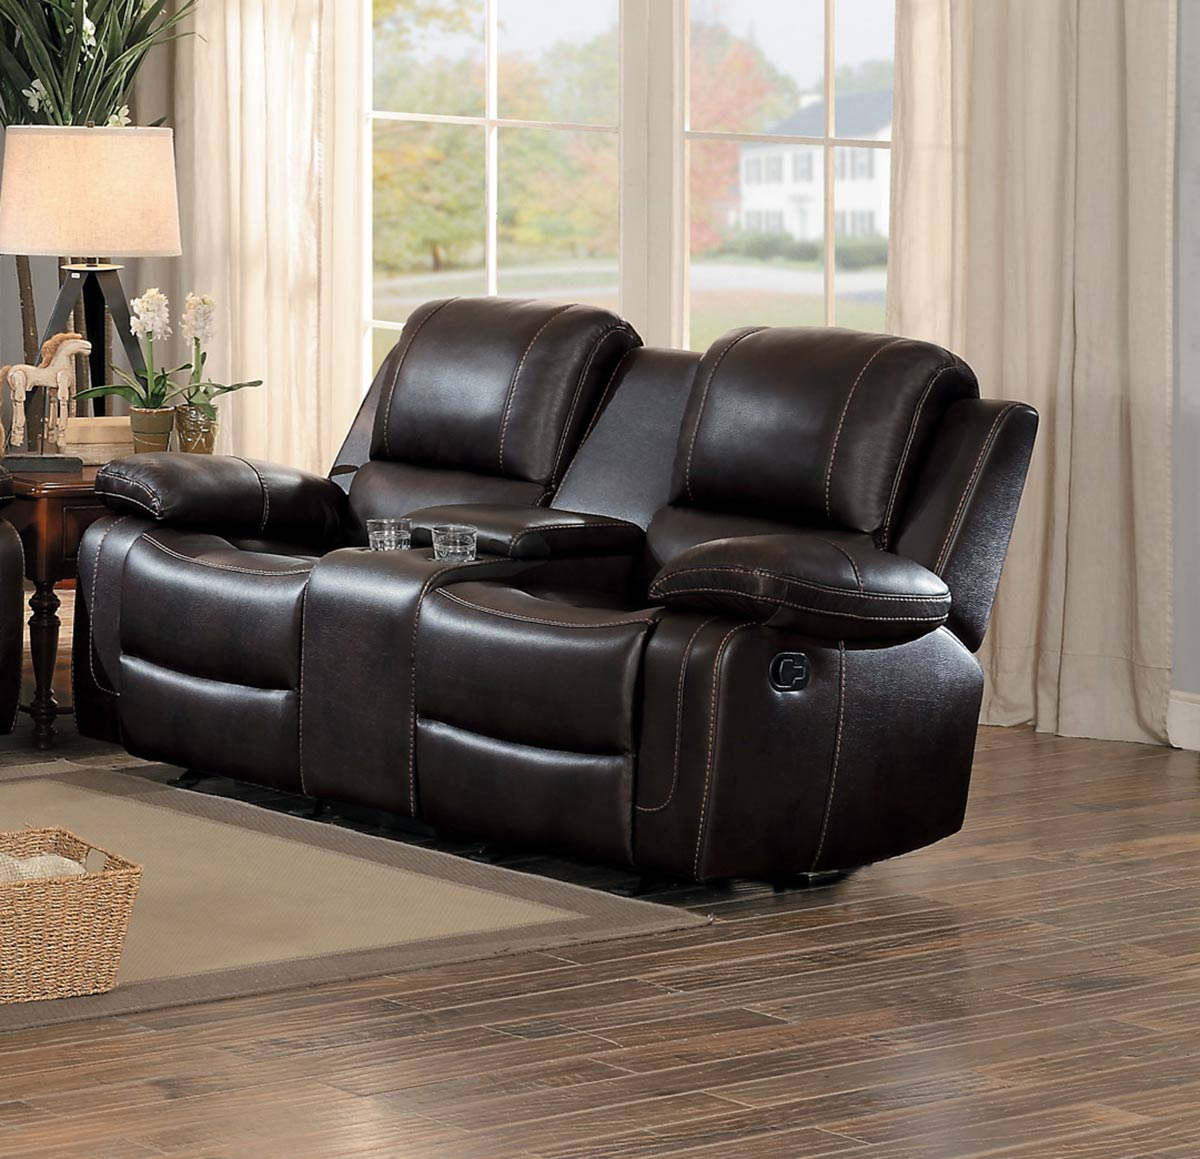 Homelegance Oriole Double Glider Reclining Love Seat with Console - Dark Brown AireHyde Match